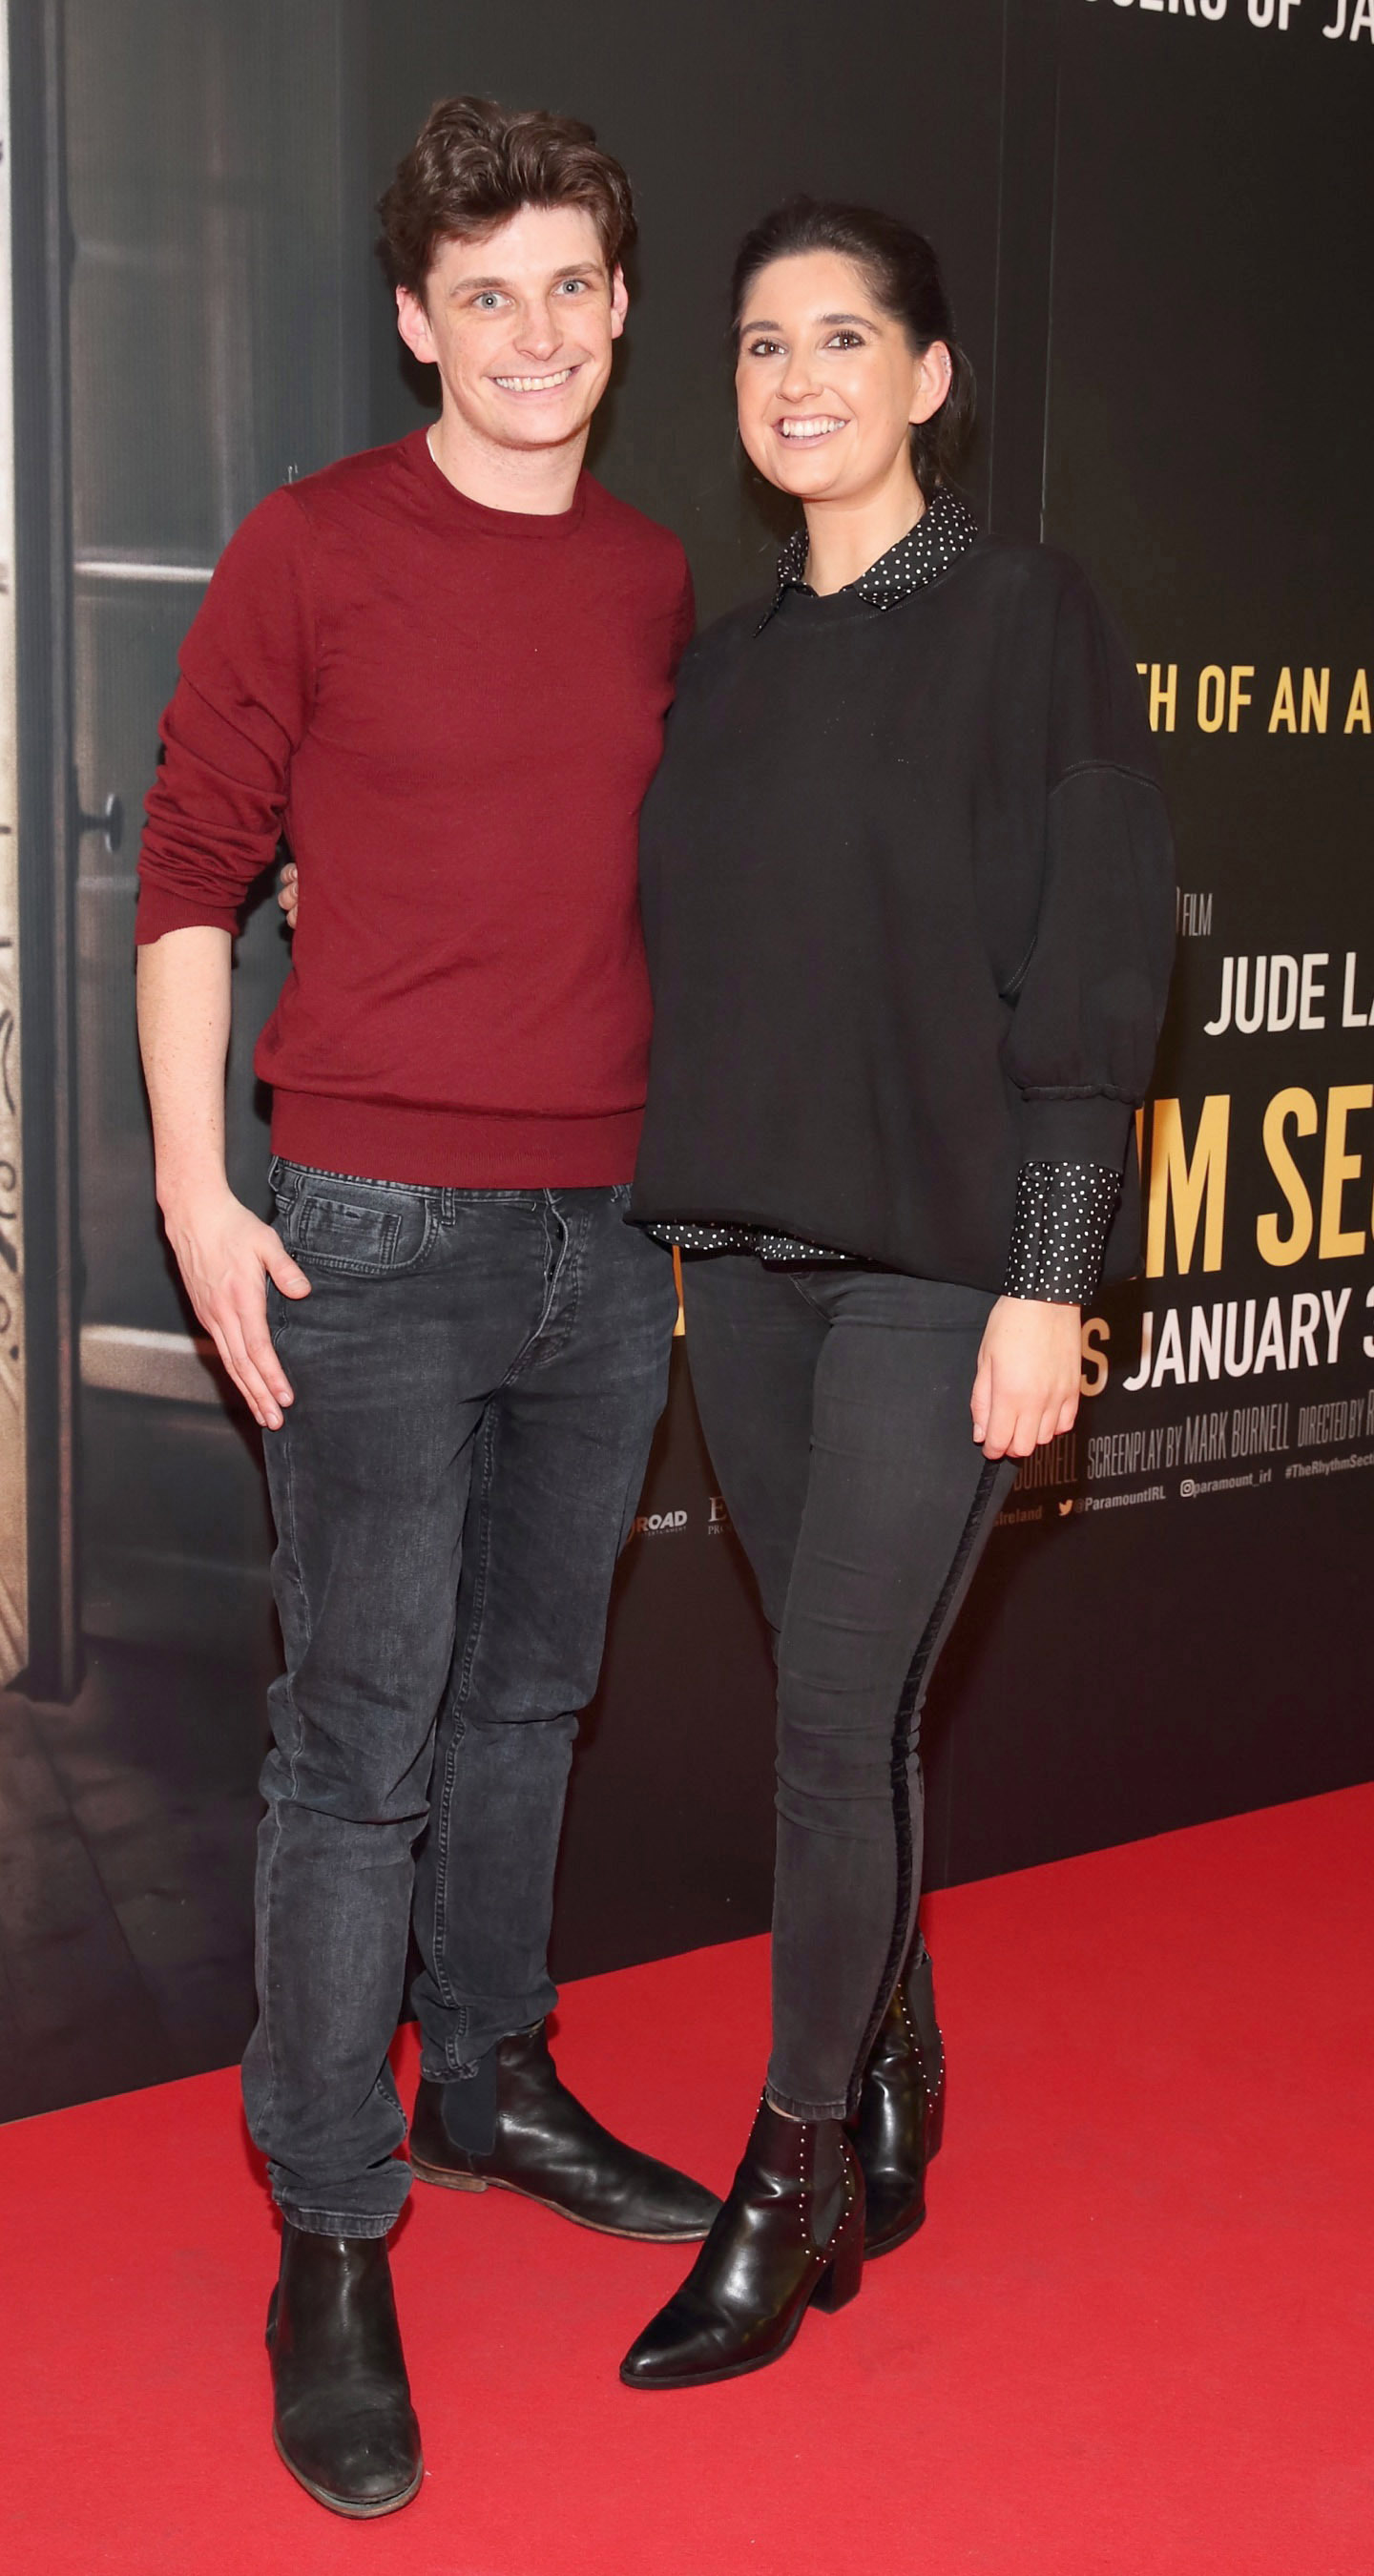 Aran Meaney and Hannah Meaney pictured at the special preview screening of The Rhythm Section at the Light House Cinema, Dublin. Pic: Brian McEvoy Photography